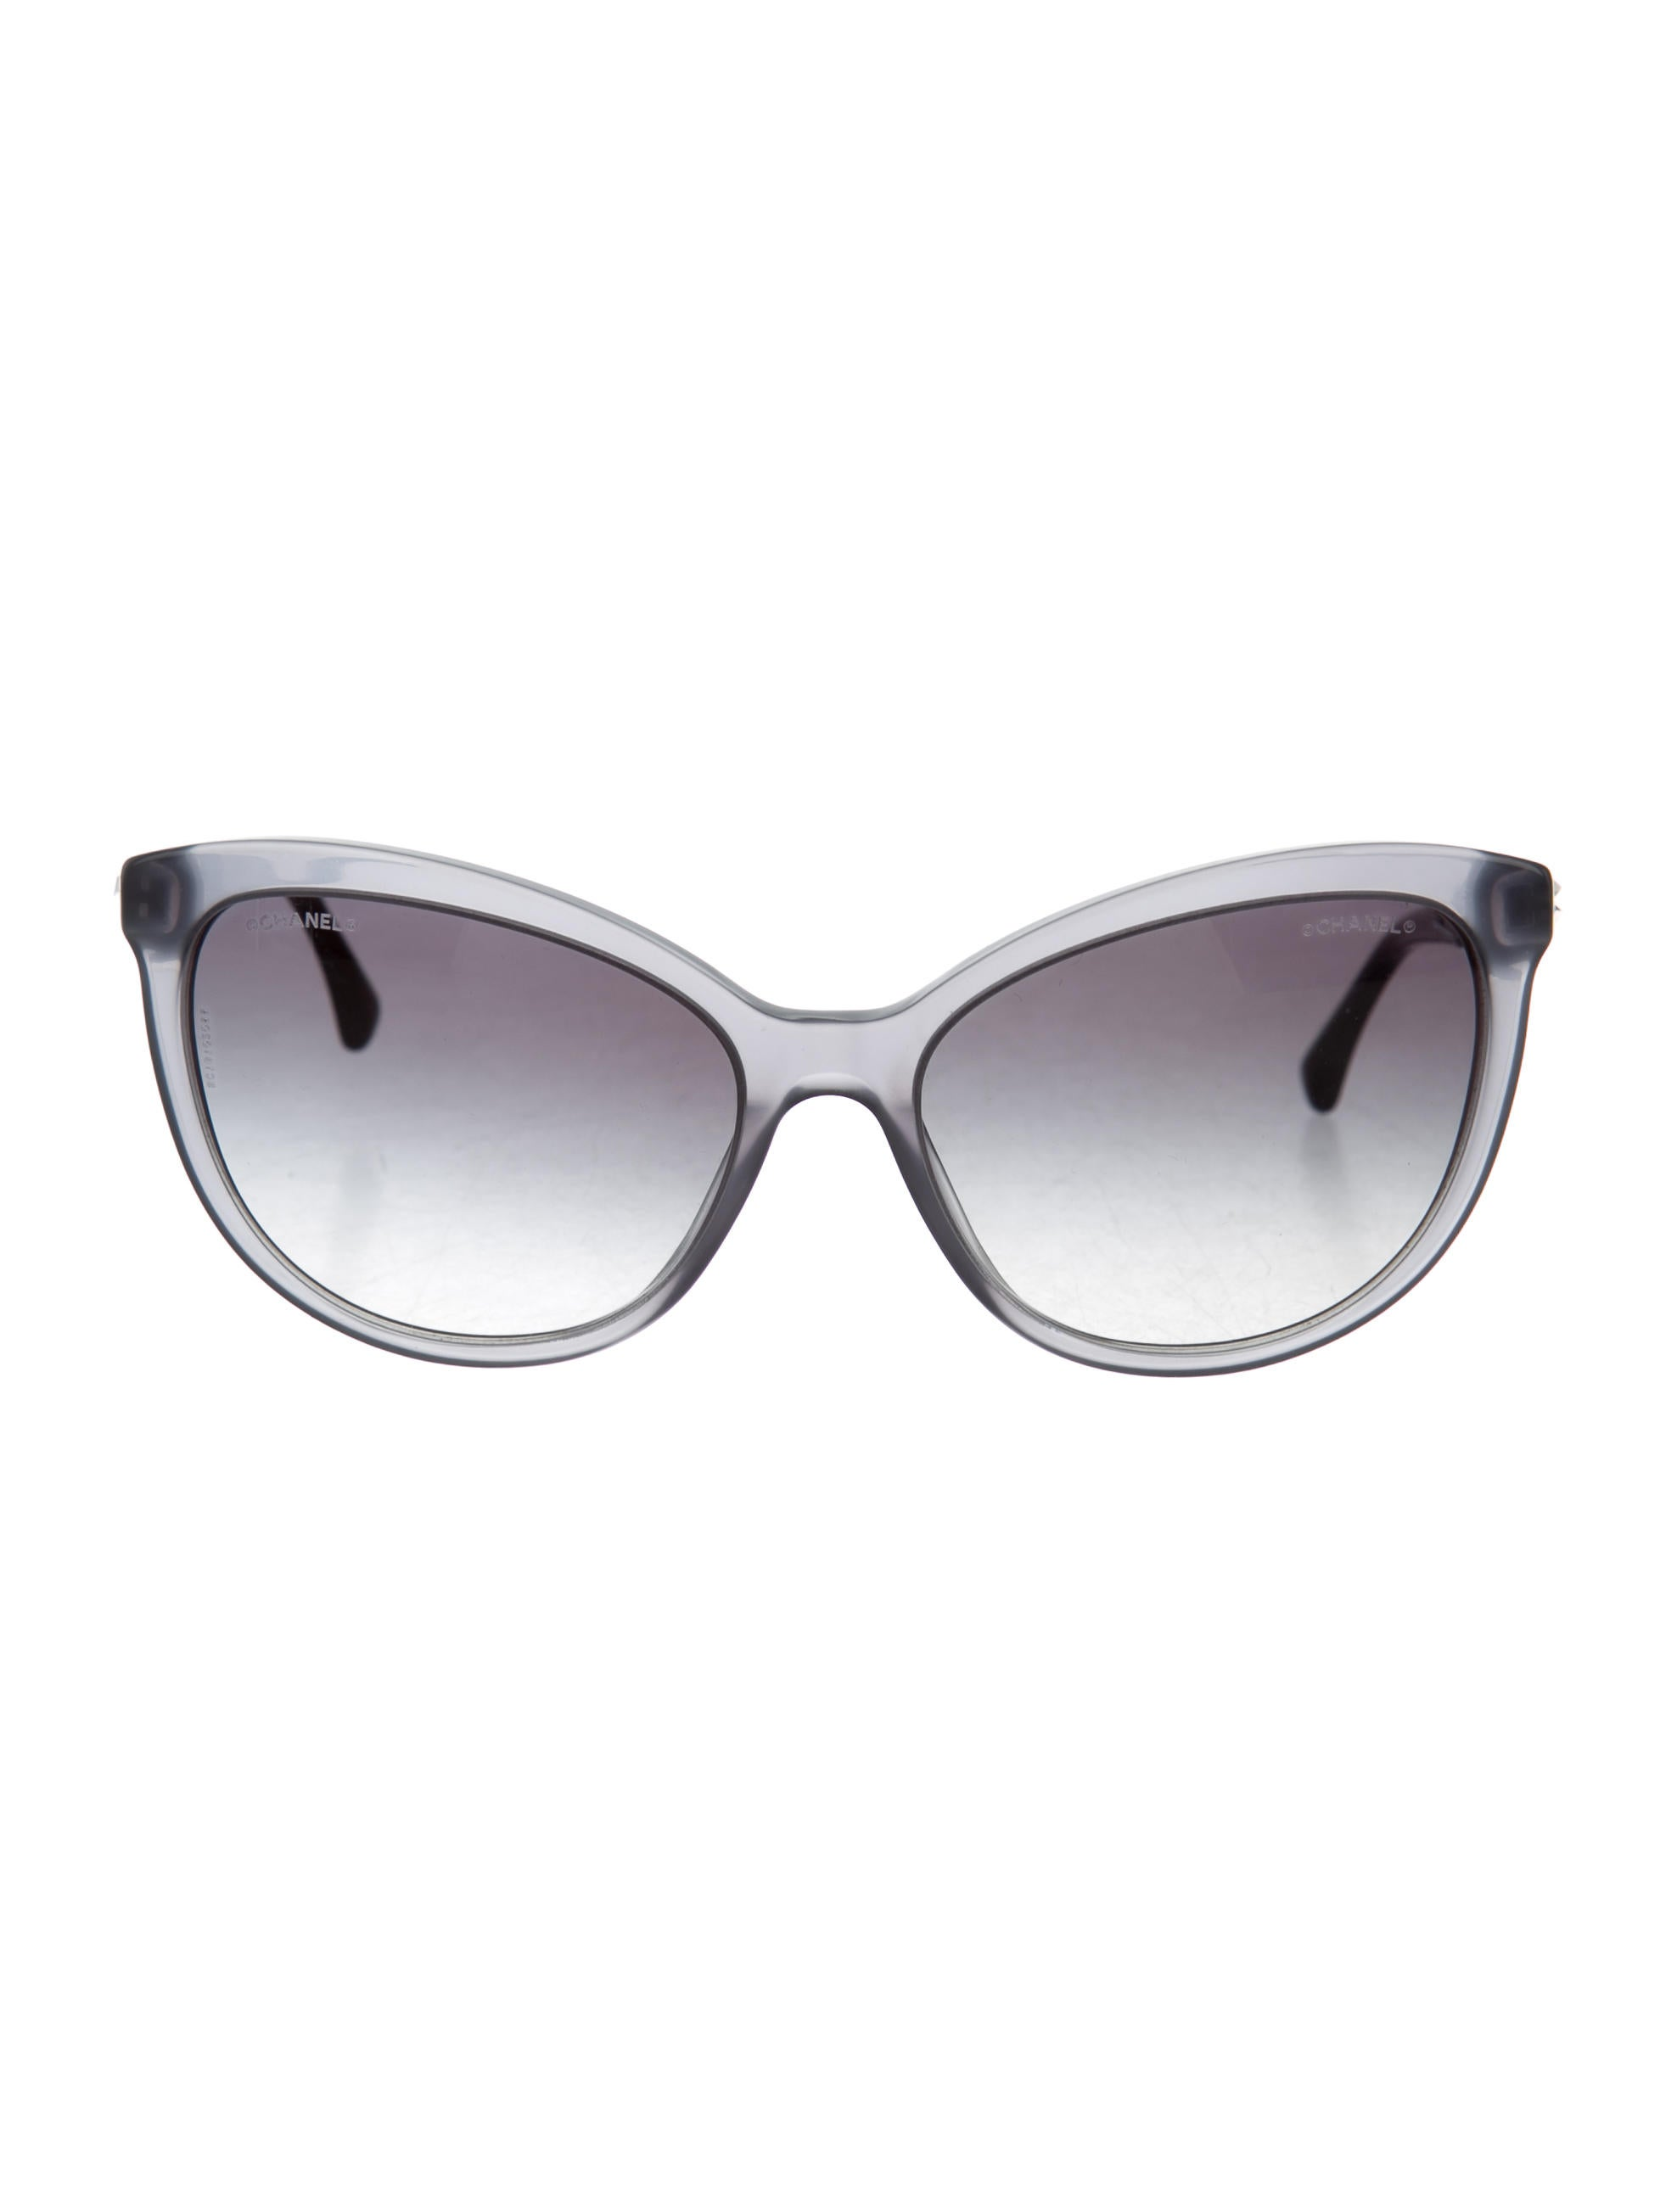 Chanel Bijou Cat Eye Sunglasses